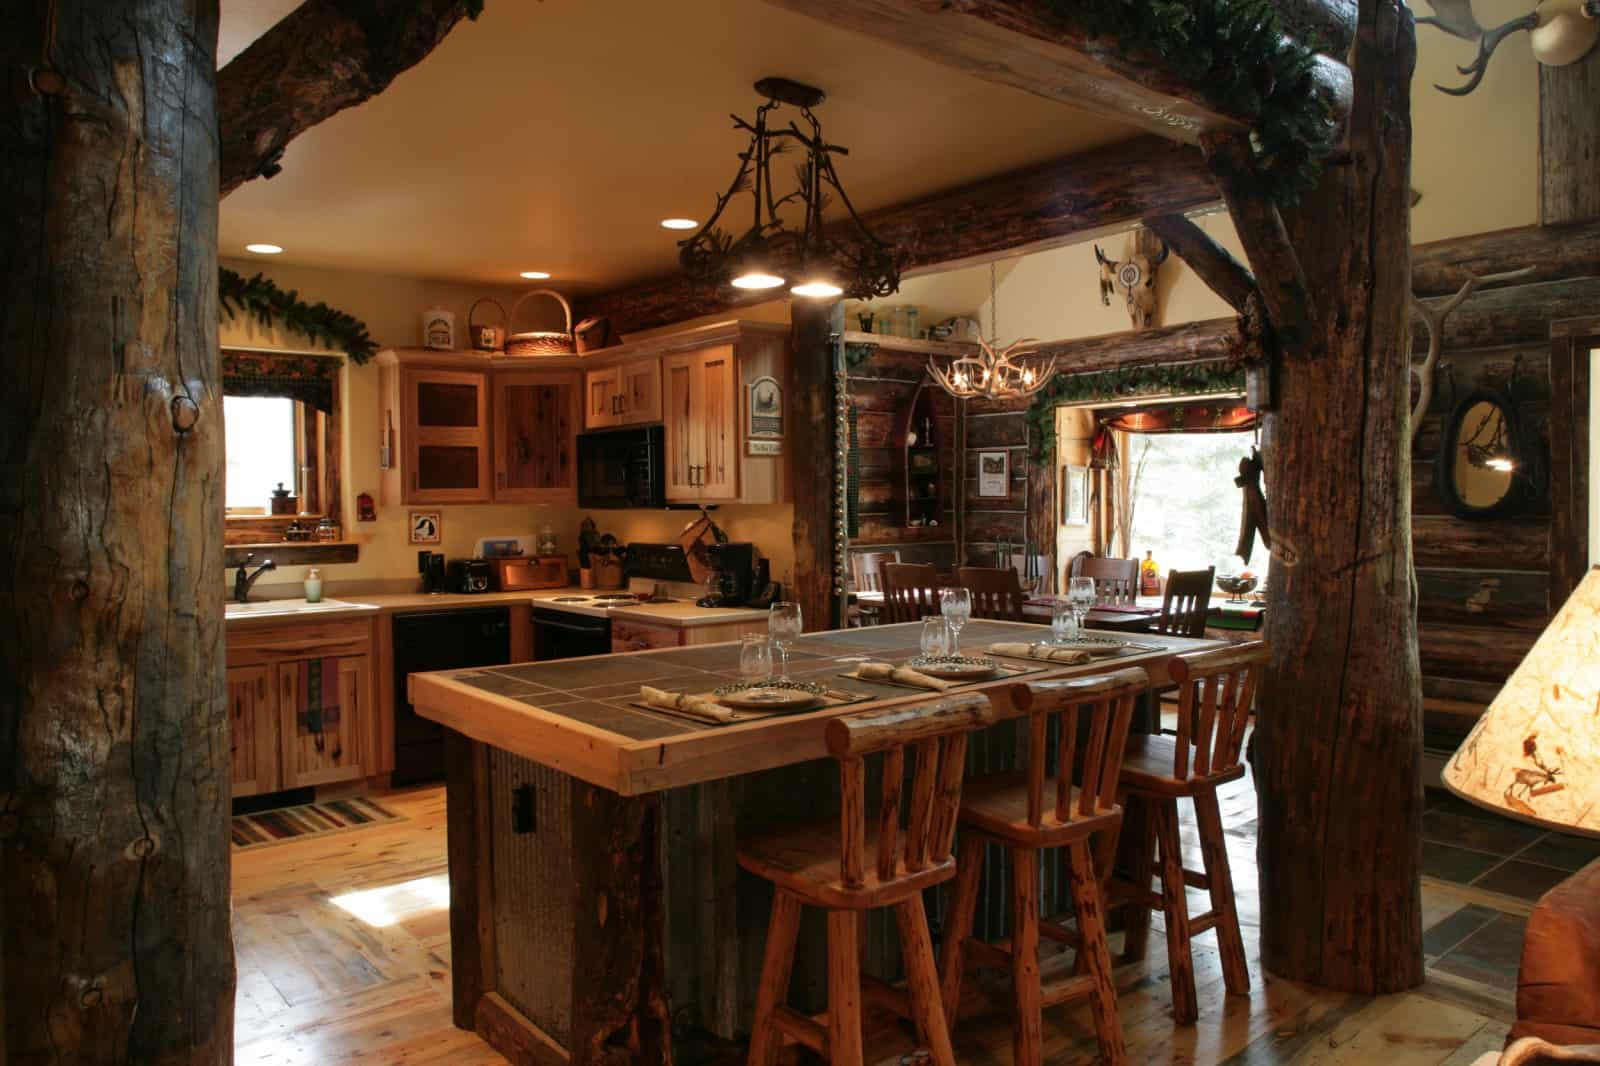 Interior design trends 2017 rustic kitchen decor house for Rustic cabin designs